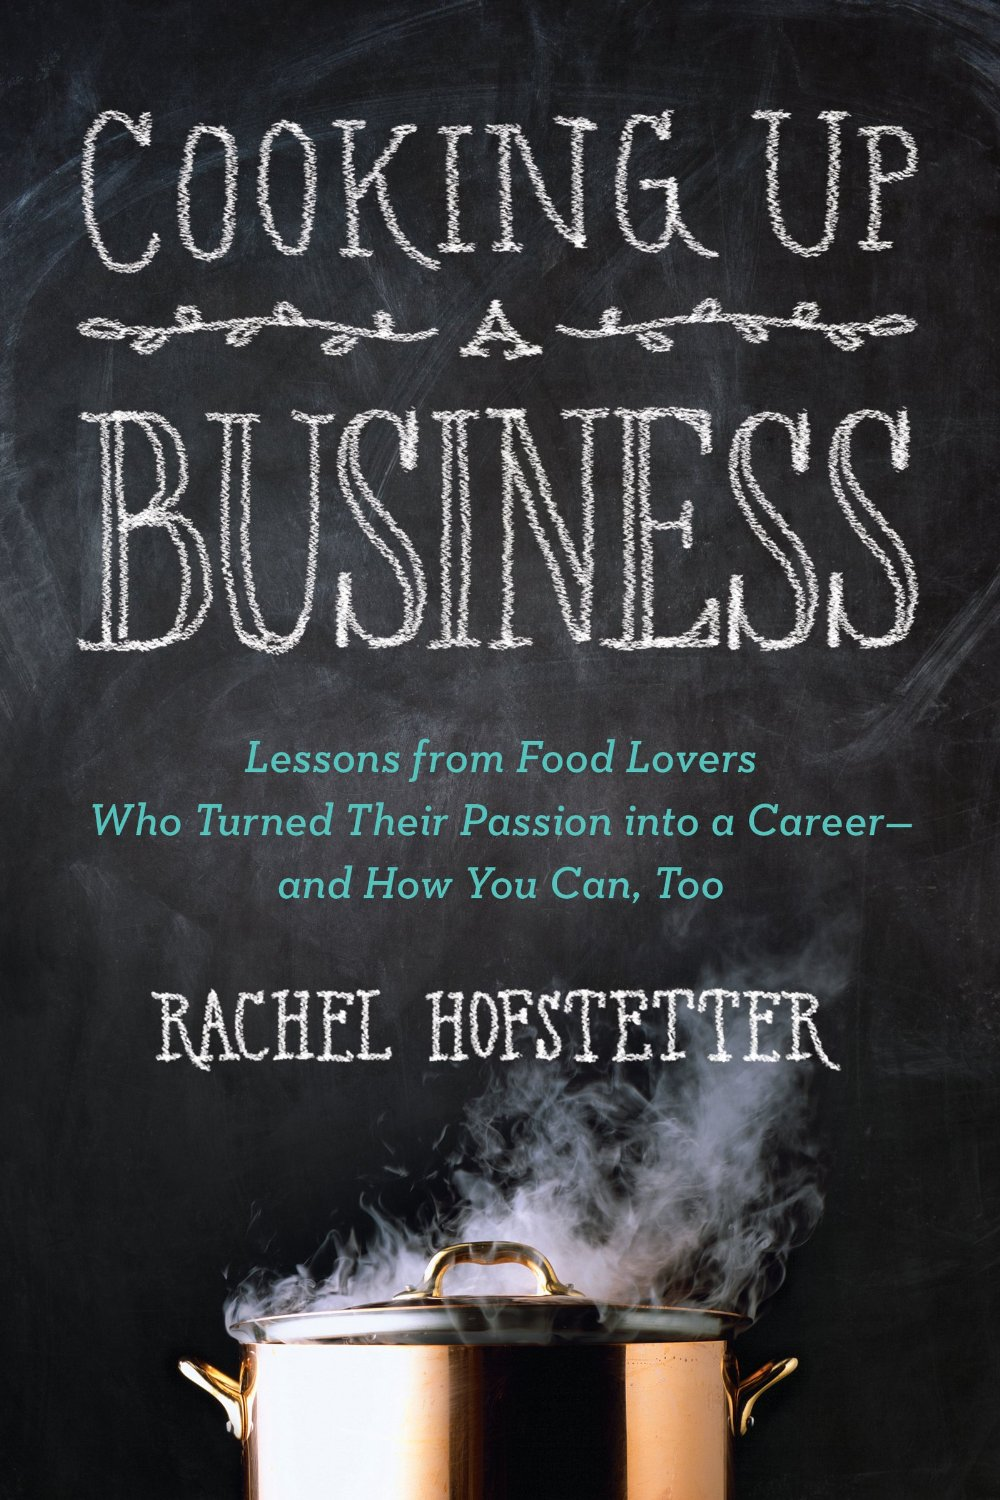 Rachel's best-selling book giving an inside look at how food entrepreneurs turned their dreams into a reality -- and how you can to!